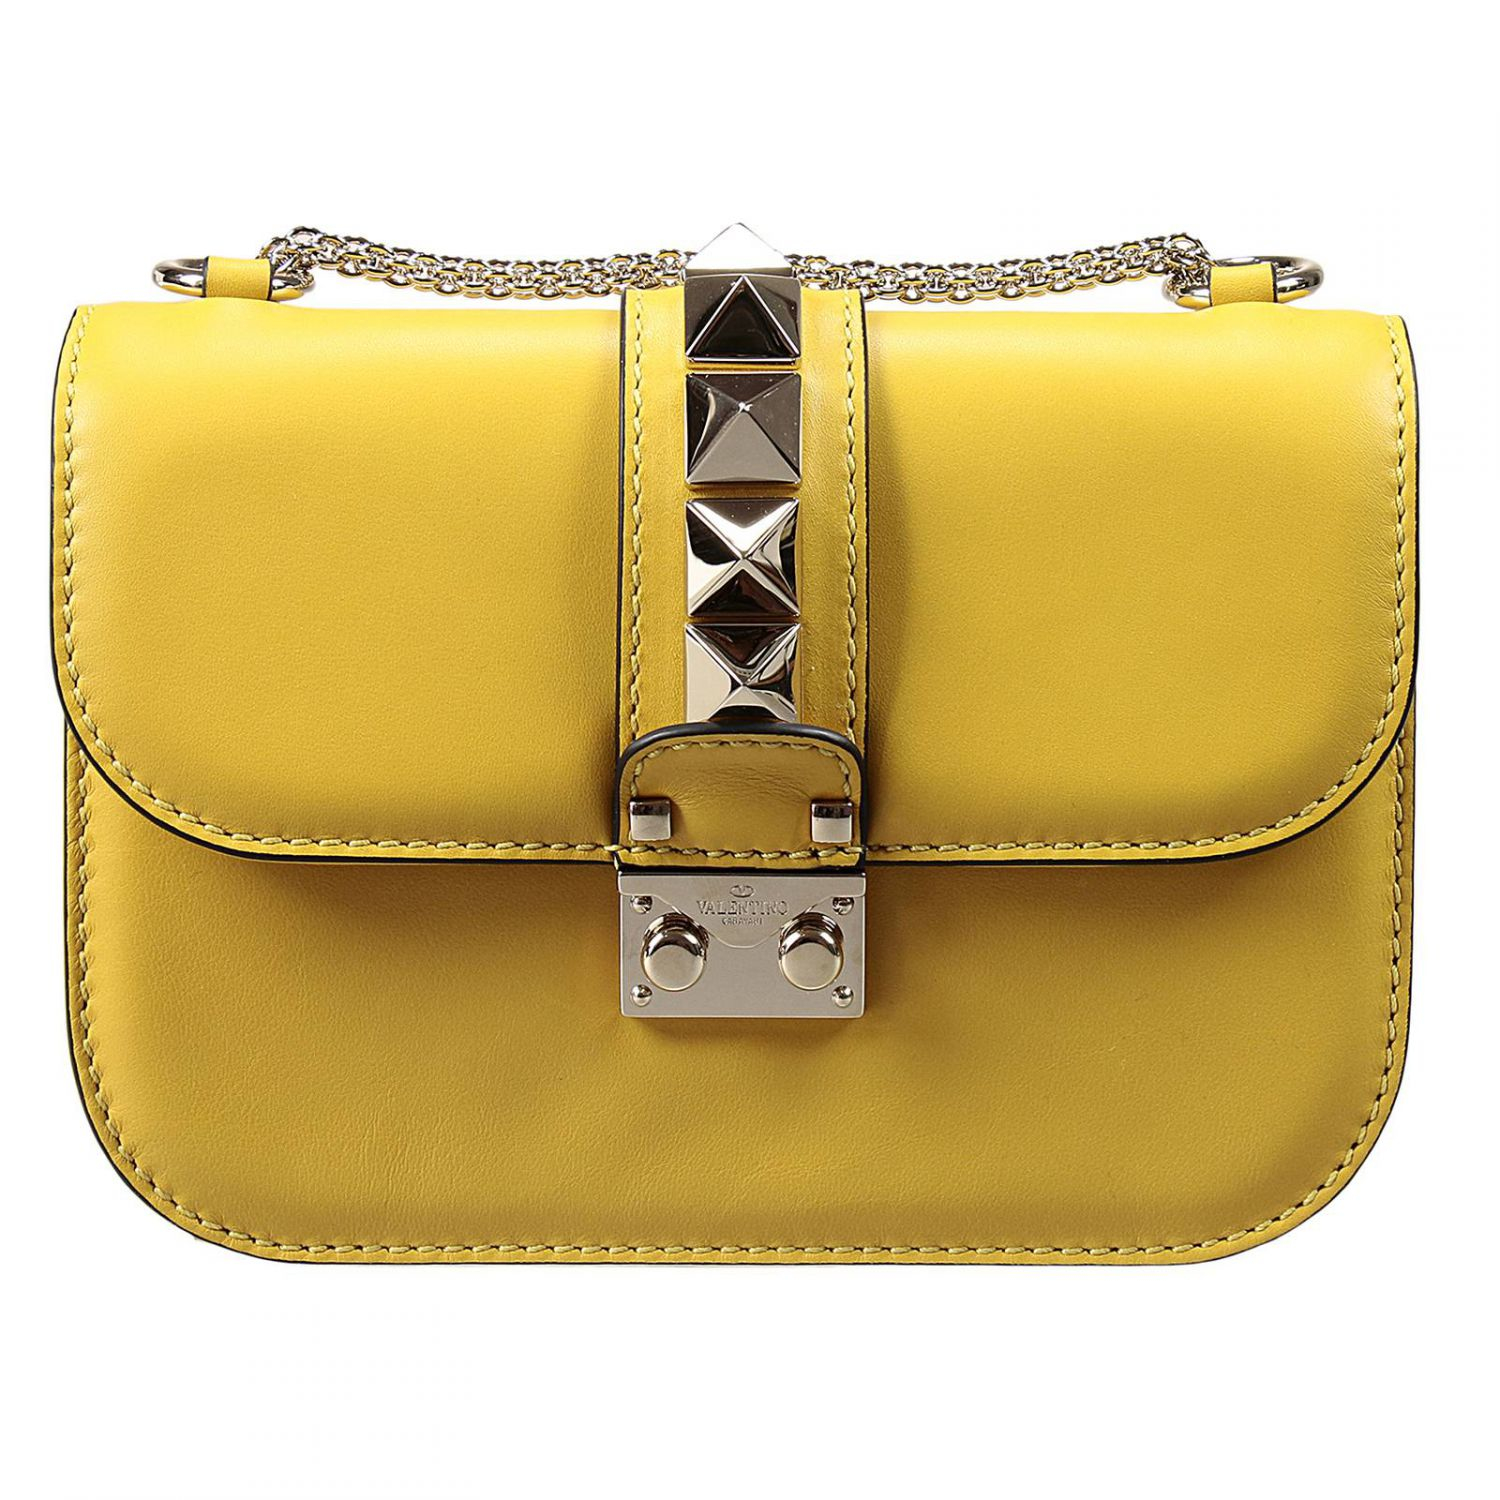 Valentino Handbag In Yellow Lyst